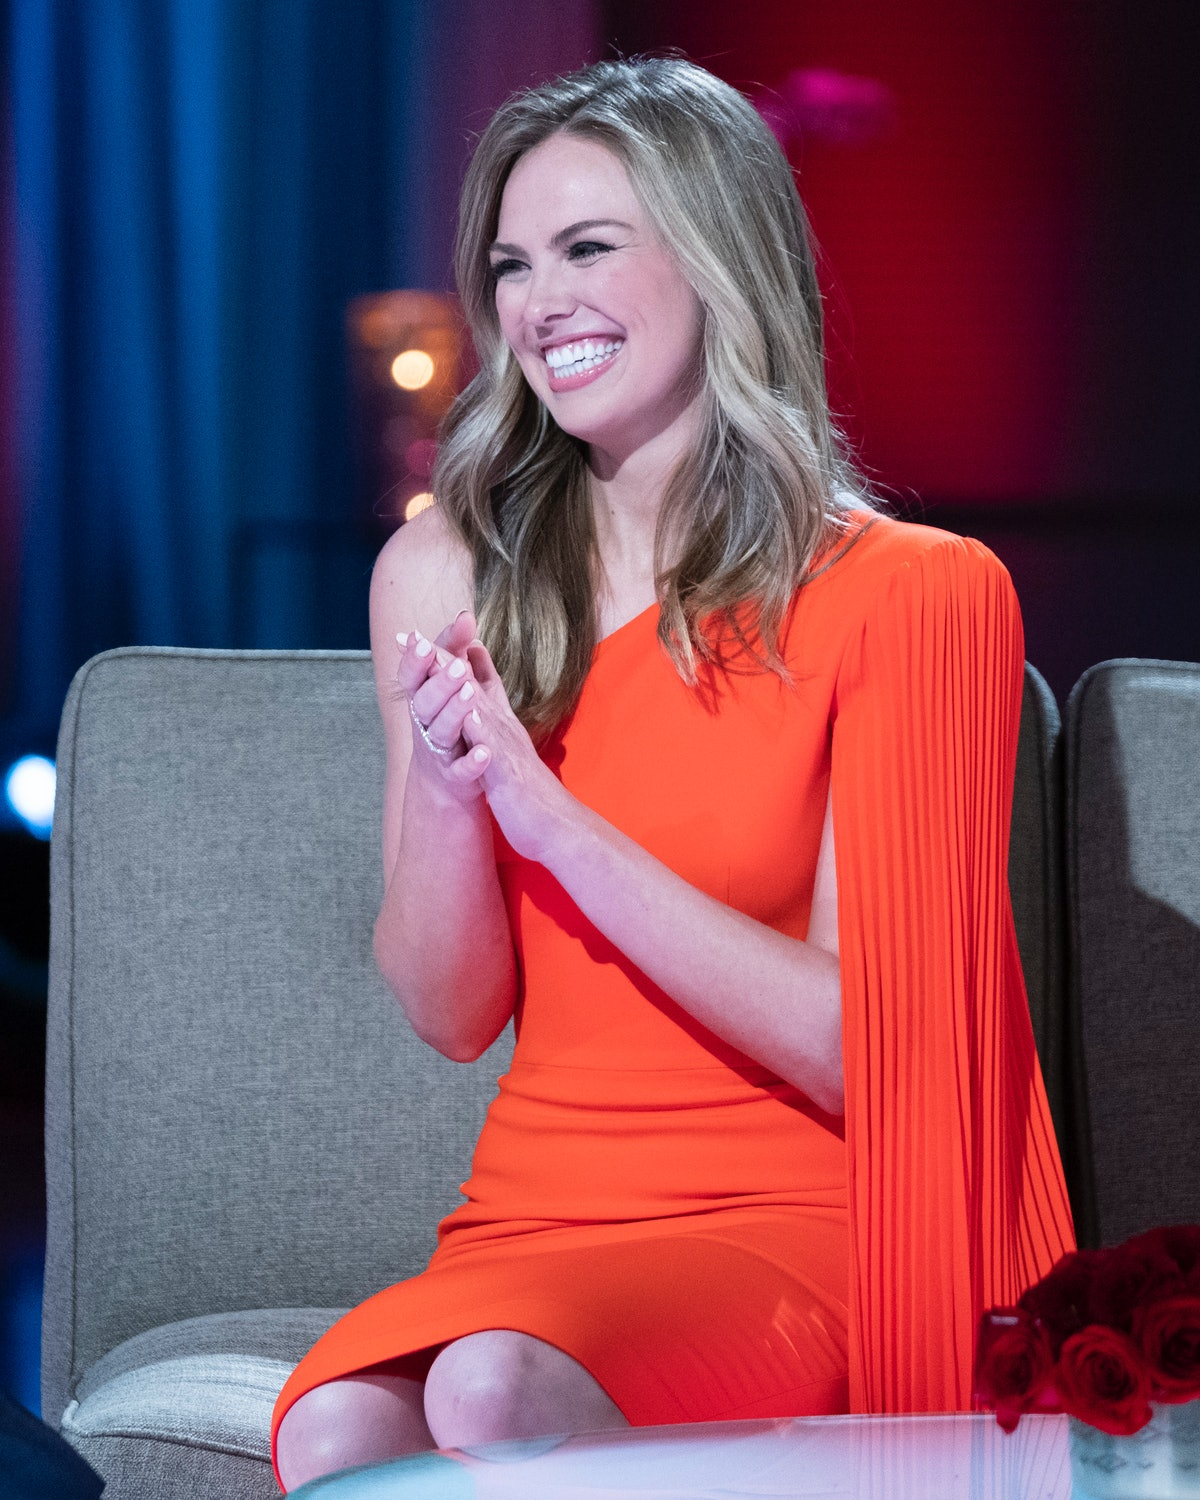 Hannah B.'s Quotes About Love On 'The Bachelorette' Will Give You Hope